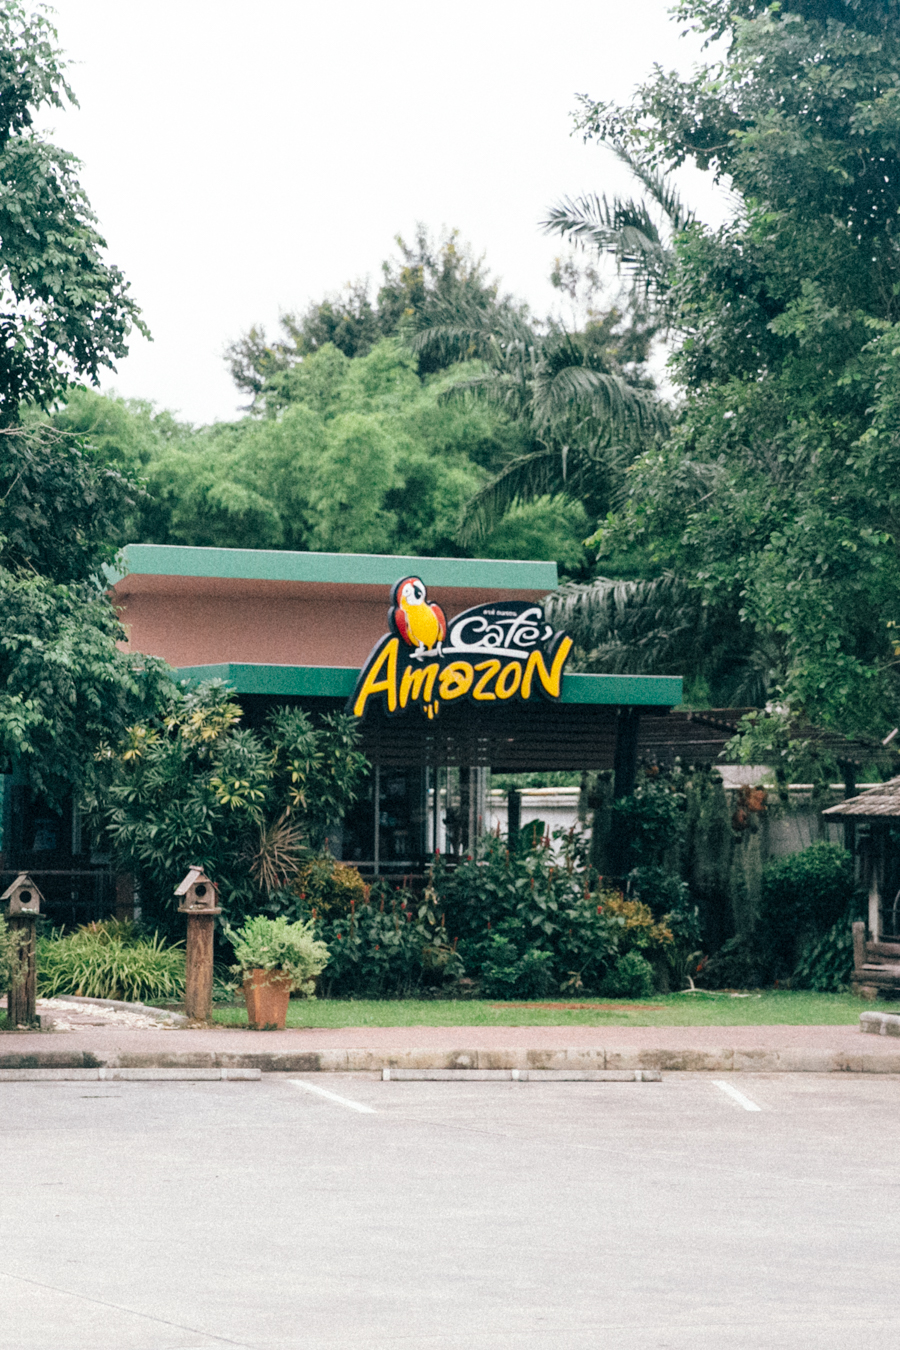 Cafe Amazon at a gas station in Thailand.